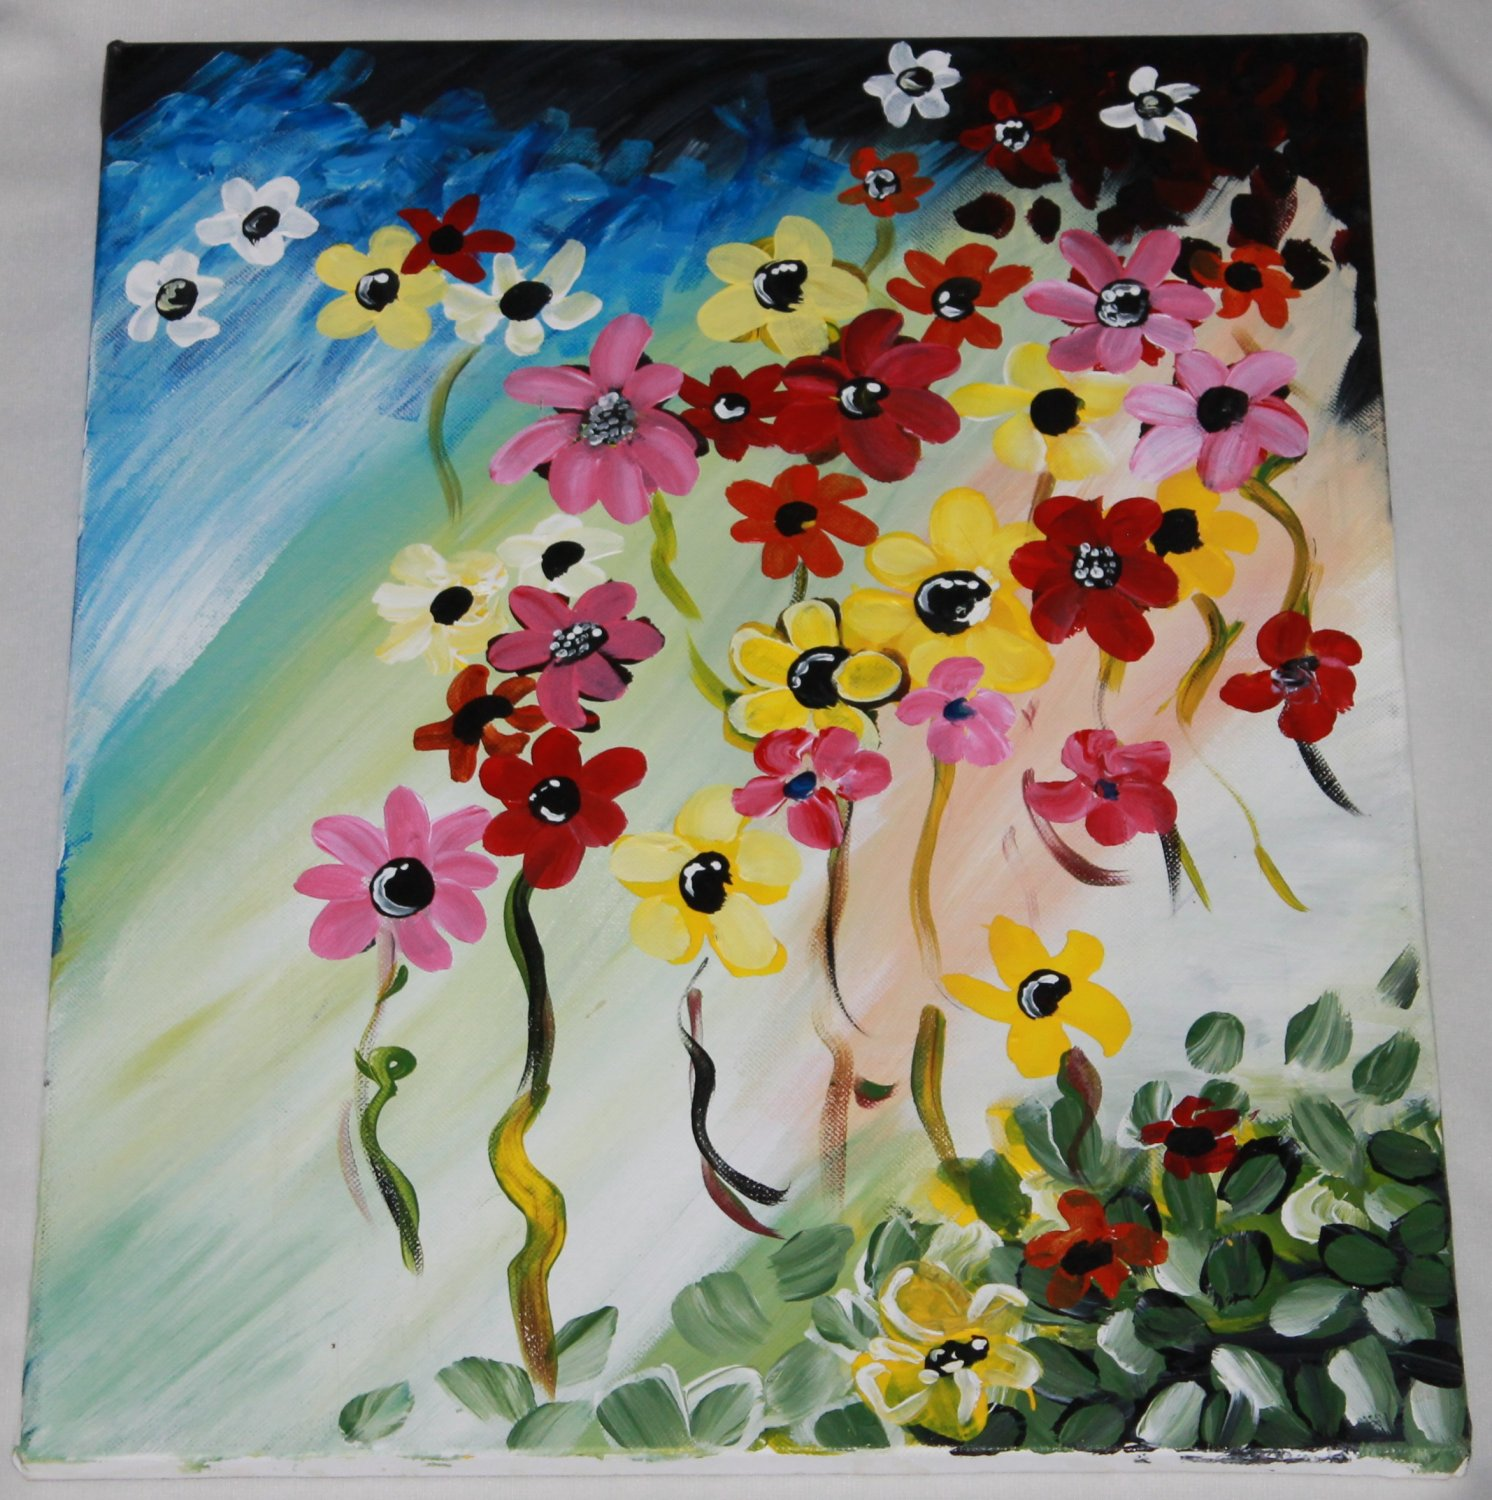 Flowers Painting - acrylic paint on cotton canvas